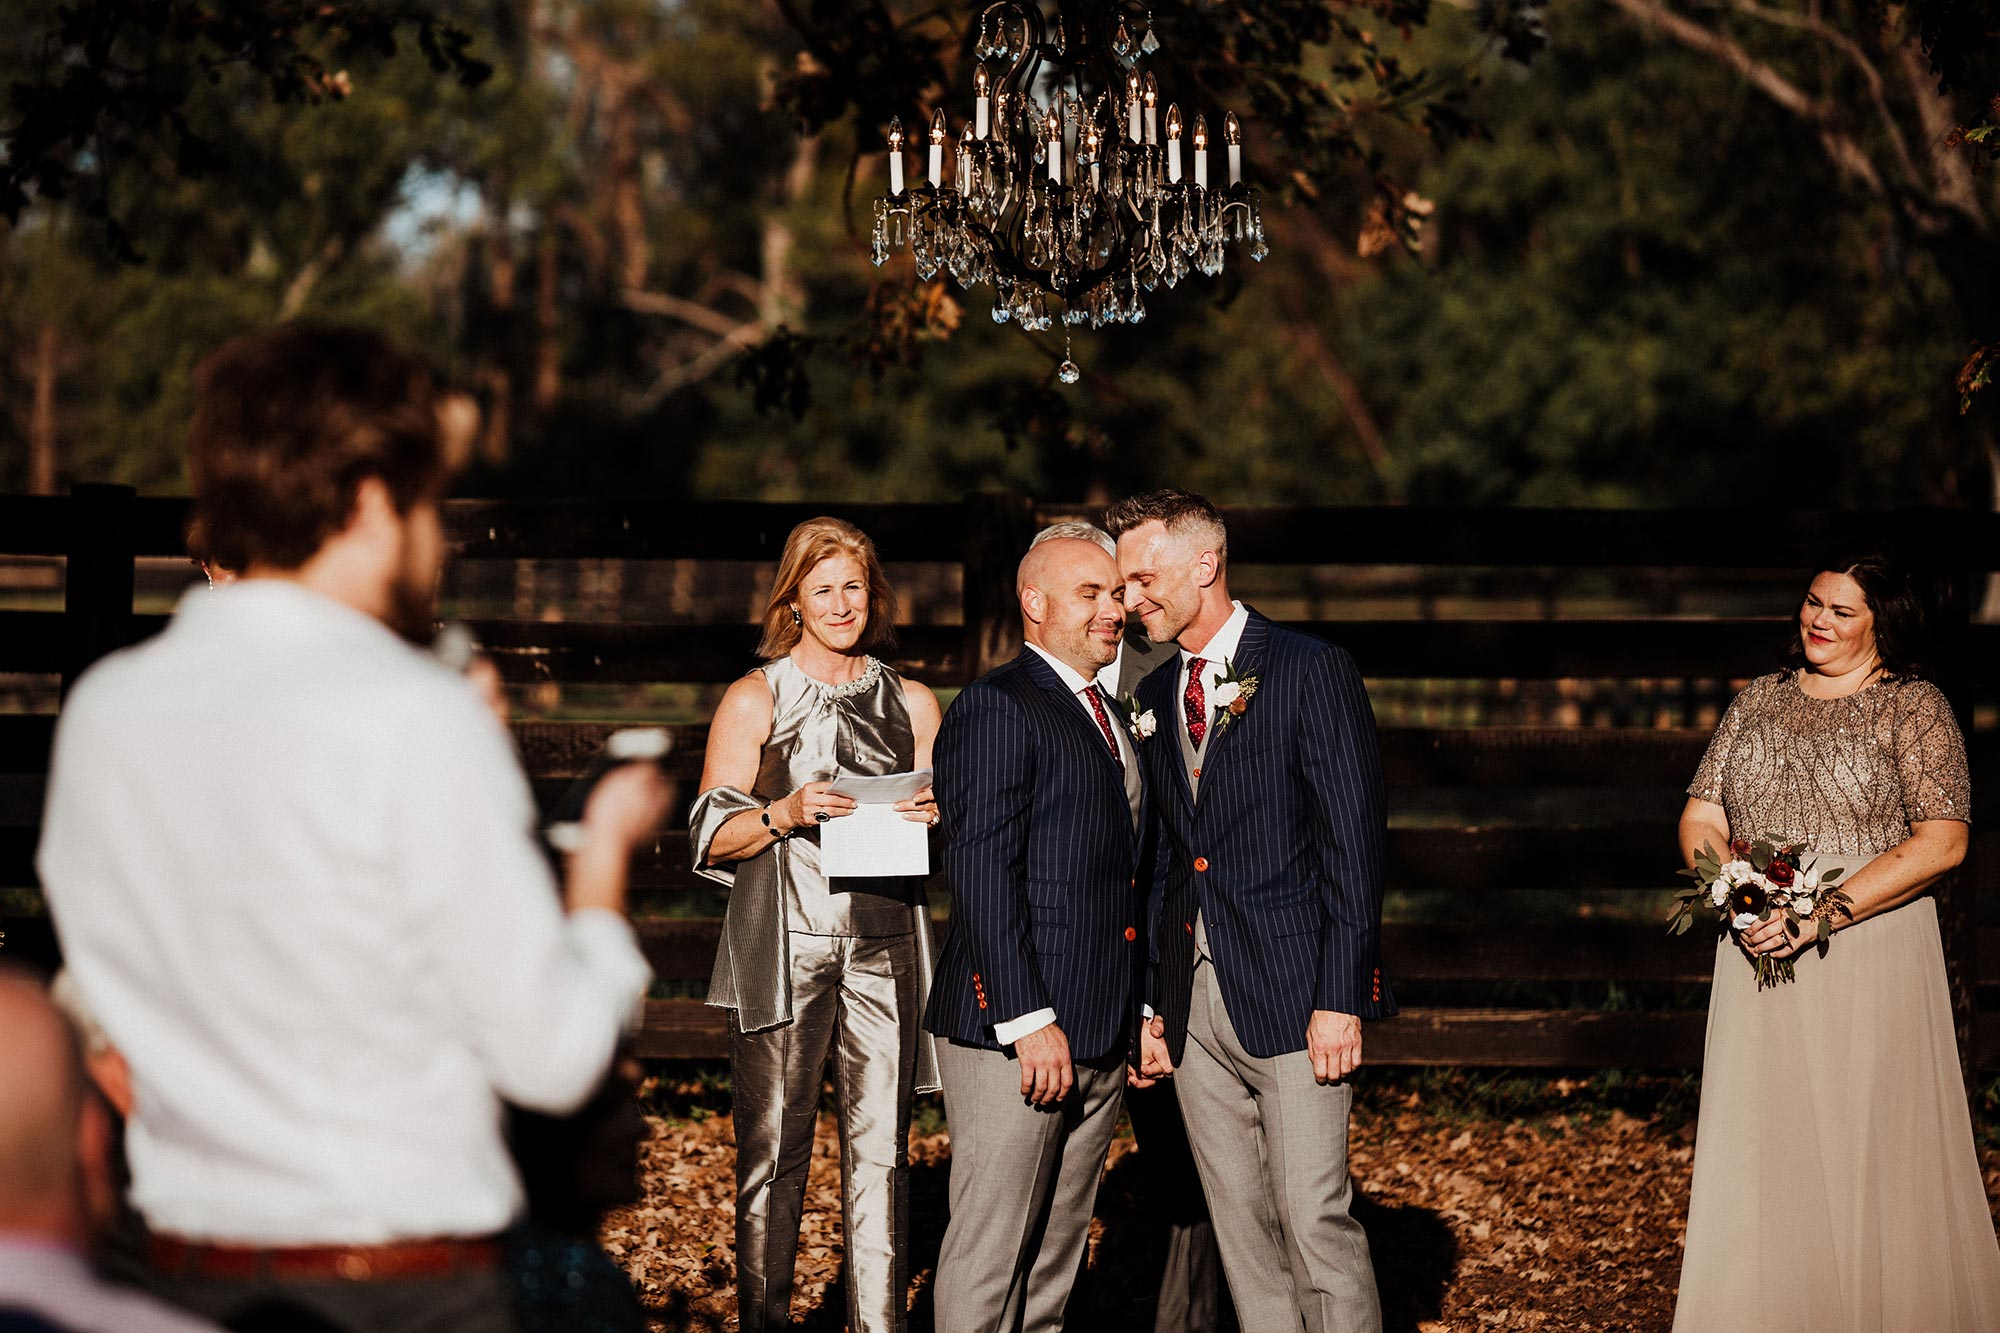 LGBTQ Louisville Kentucky Wedding at Hermitage Farm Crystal Ludwick Photo ceremony candid